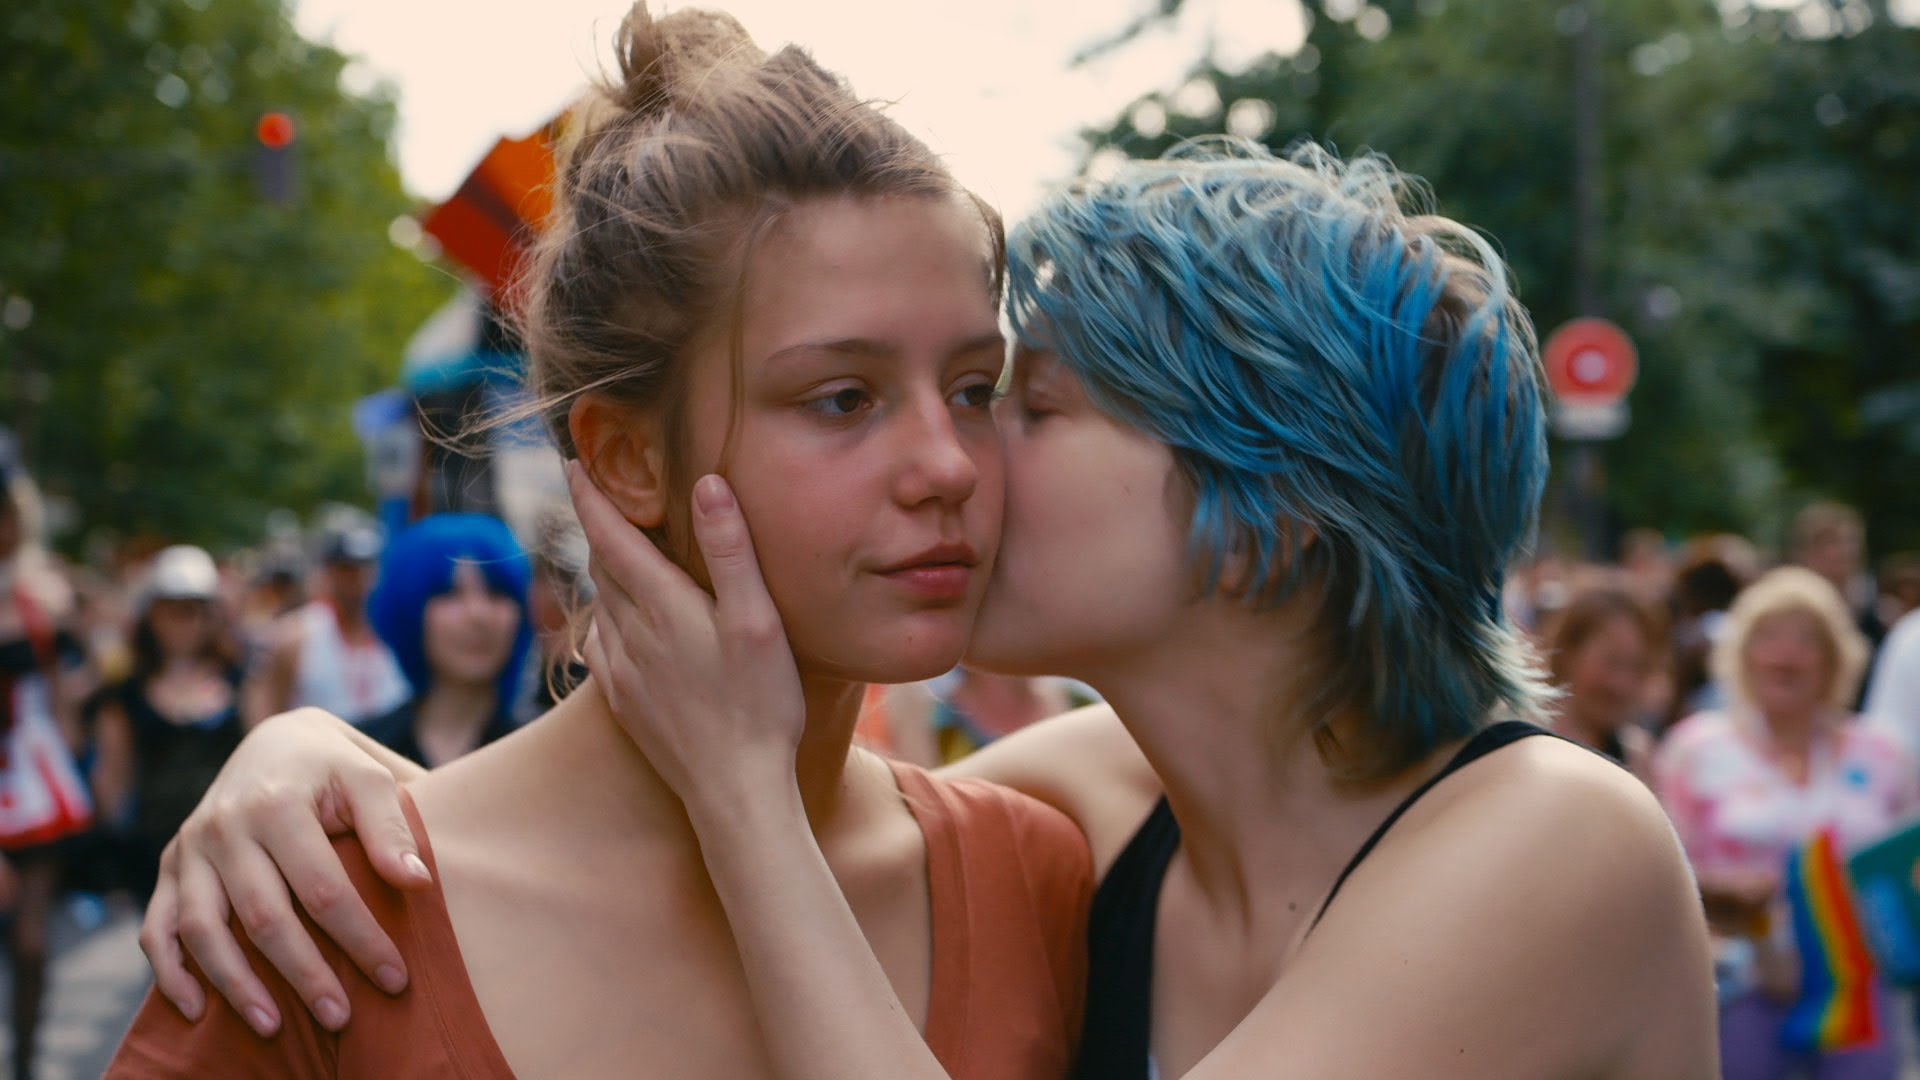 The film 'Blue is the Warmest Color,' although  controversial , brilliantly uses an unexpected color association by signifying love with the color blue. We see the relationship arc of Adèle and Emma reinforced by the gradual desaturation of the blues showing the brilliance of first love and the muted bleakness of its end.